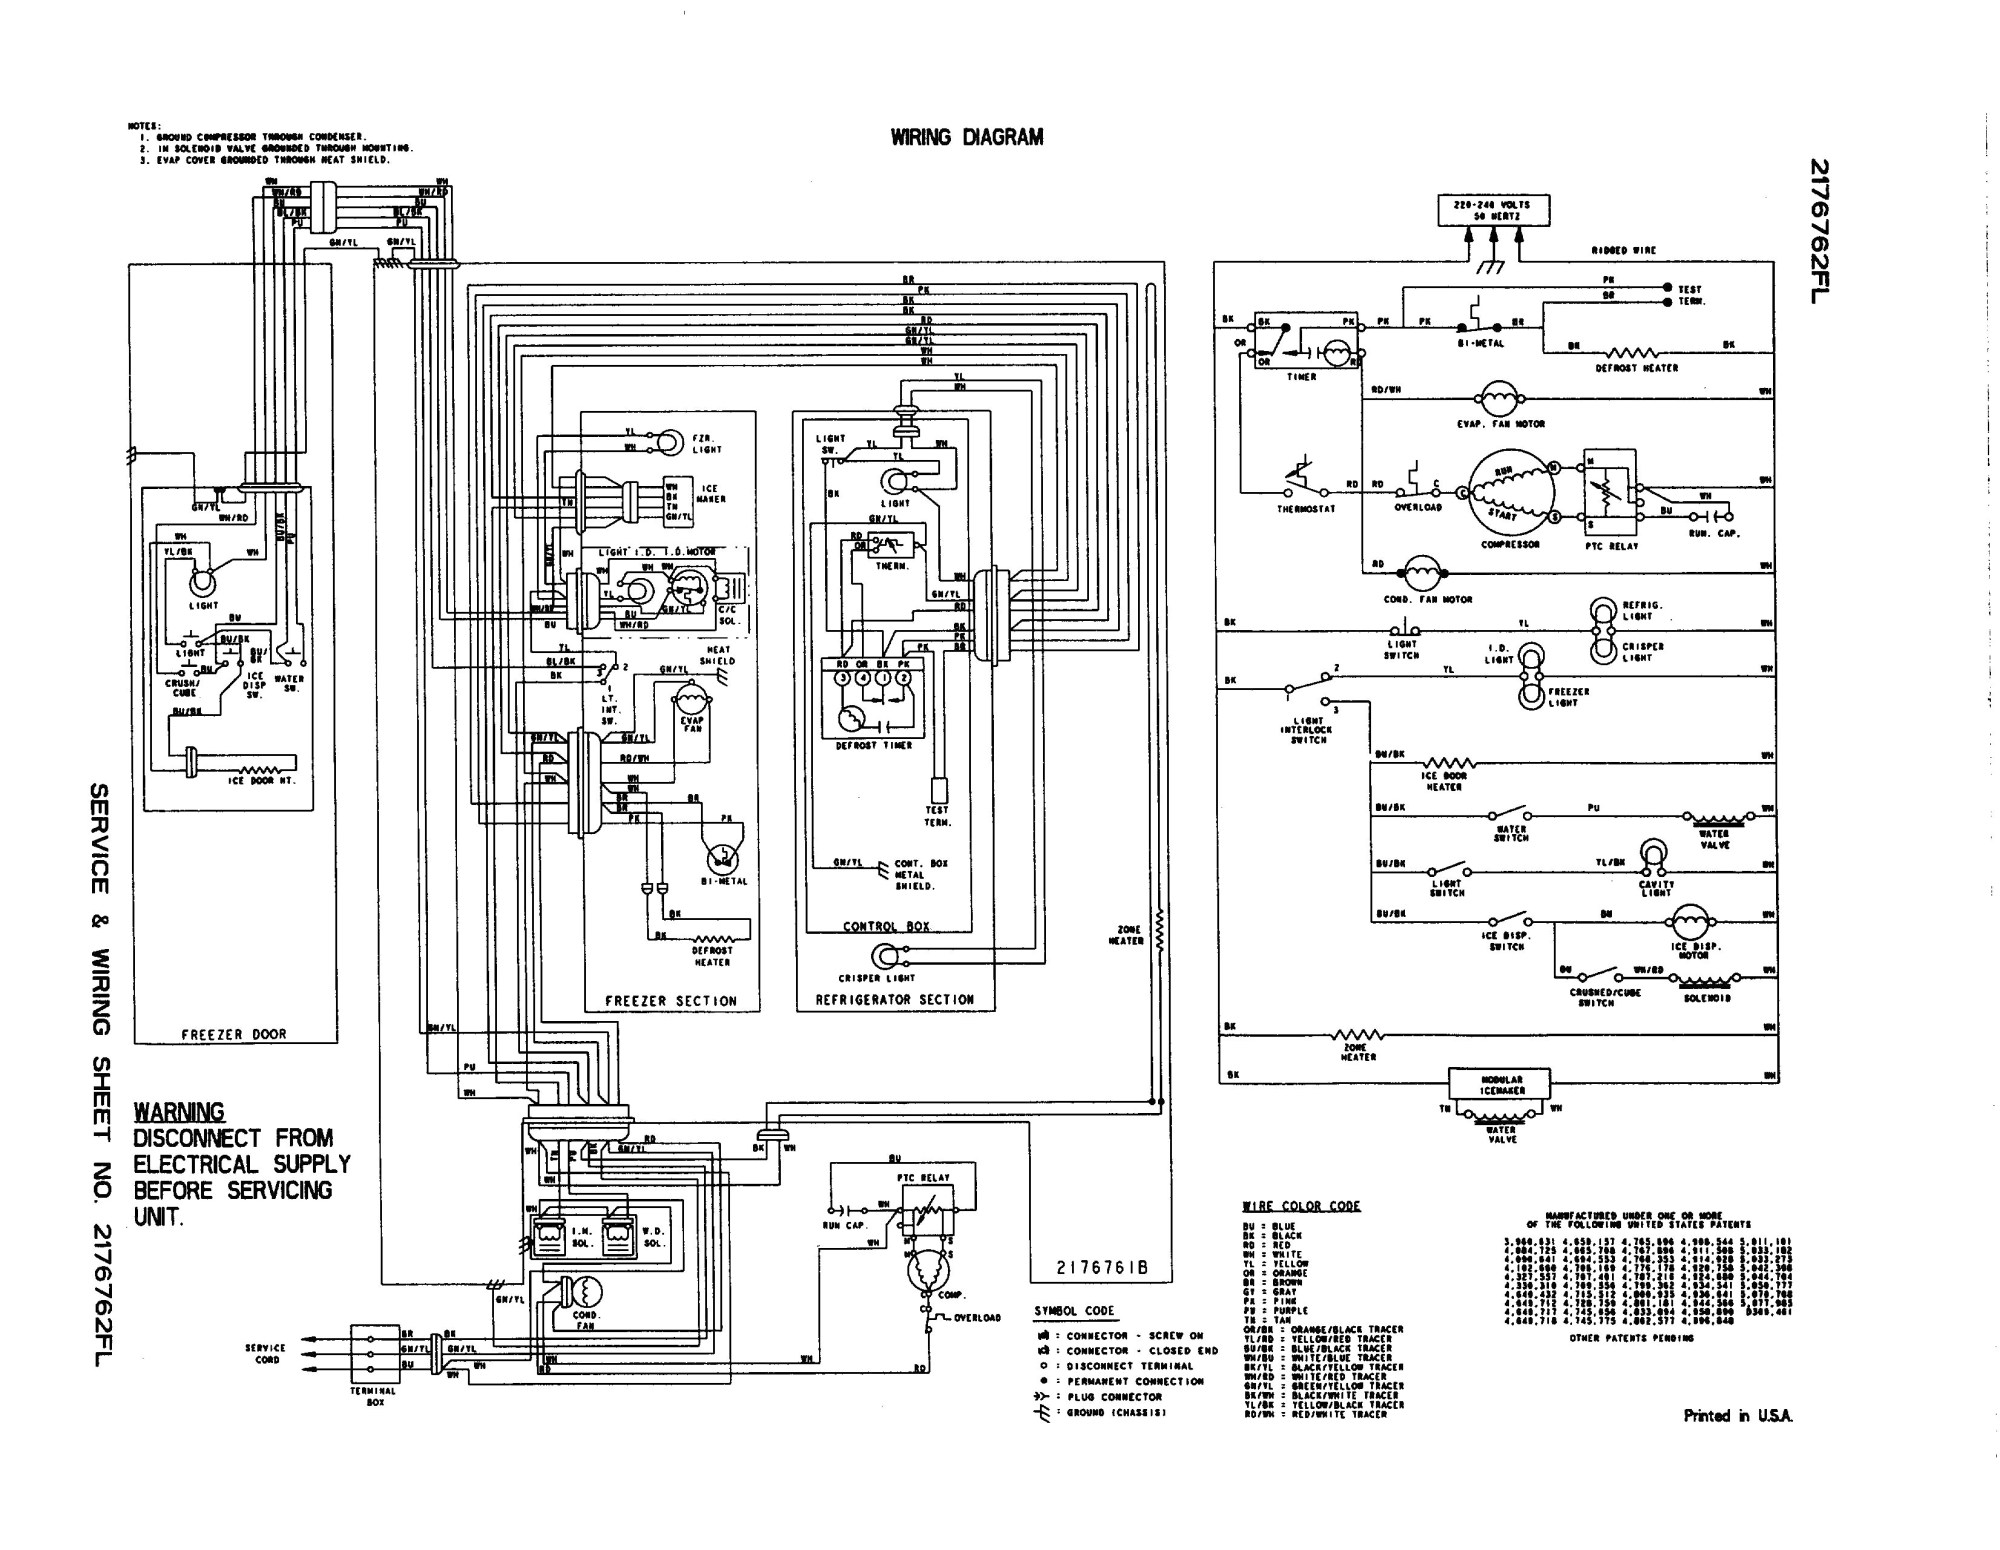 hight resolution of ge wiring diagram my wiring diagramwiring refrigerator diagram ge pds20m wiring diagram local ge washer wiring